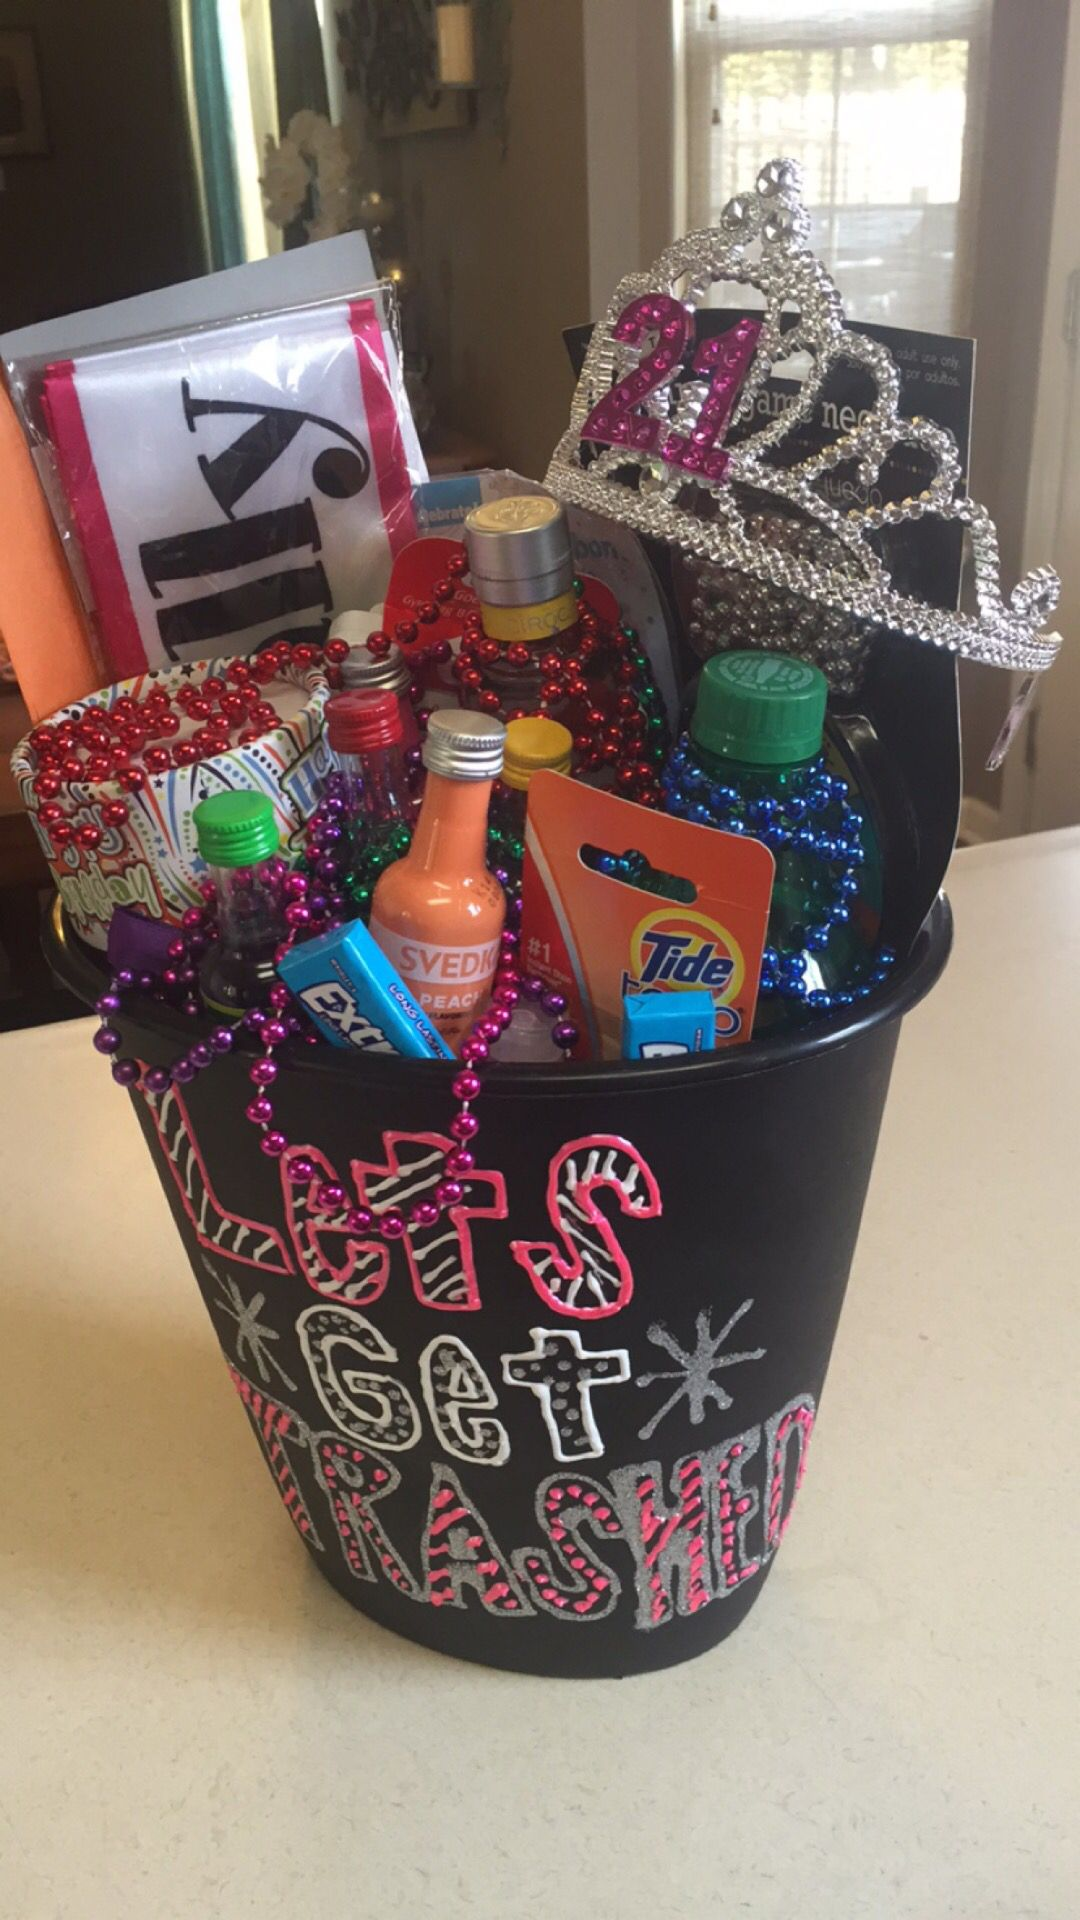 21st birthday gift in a trash can saying lets get